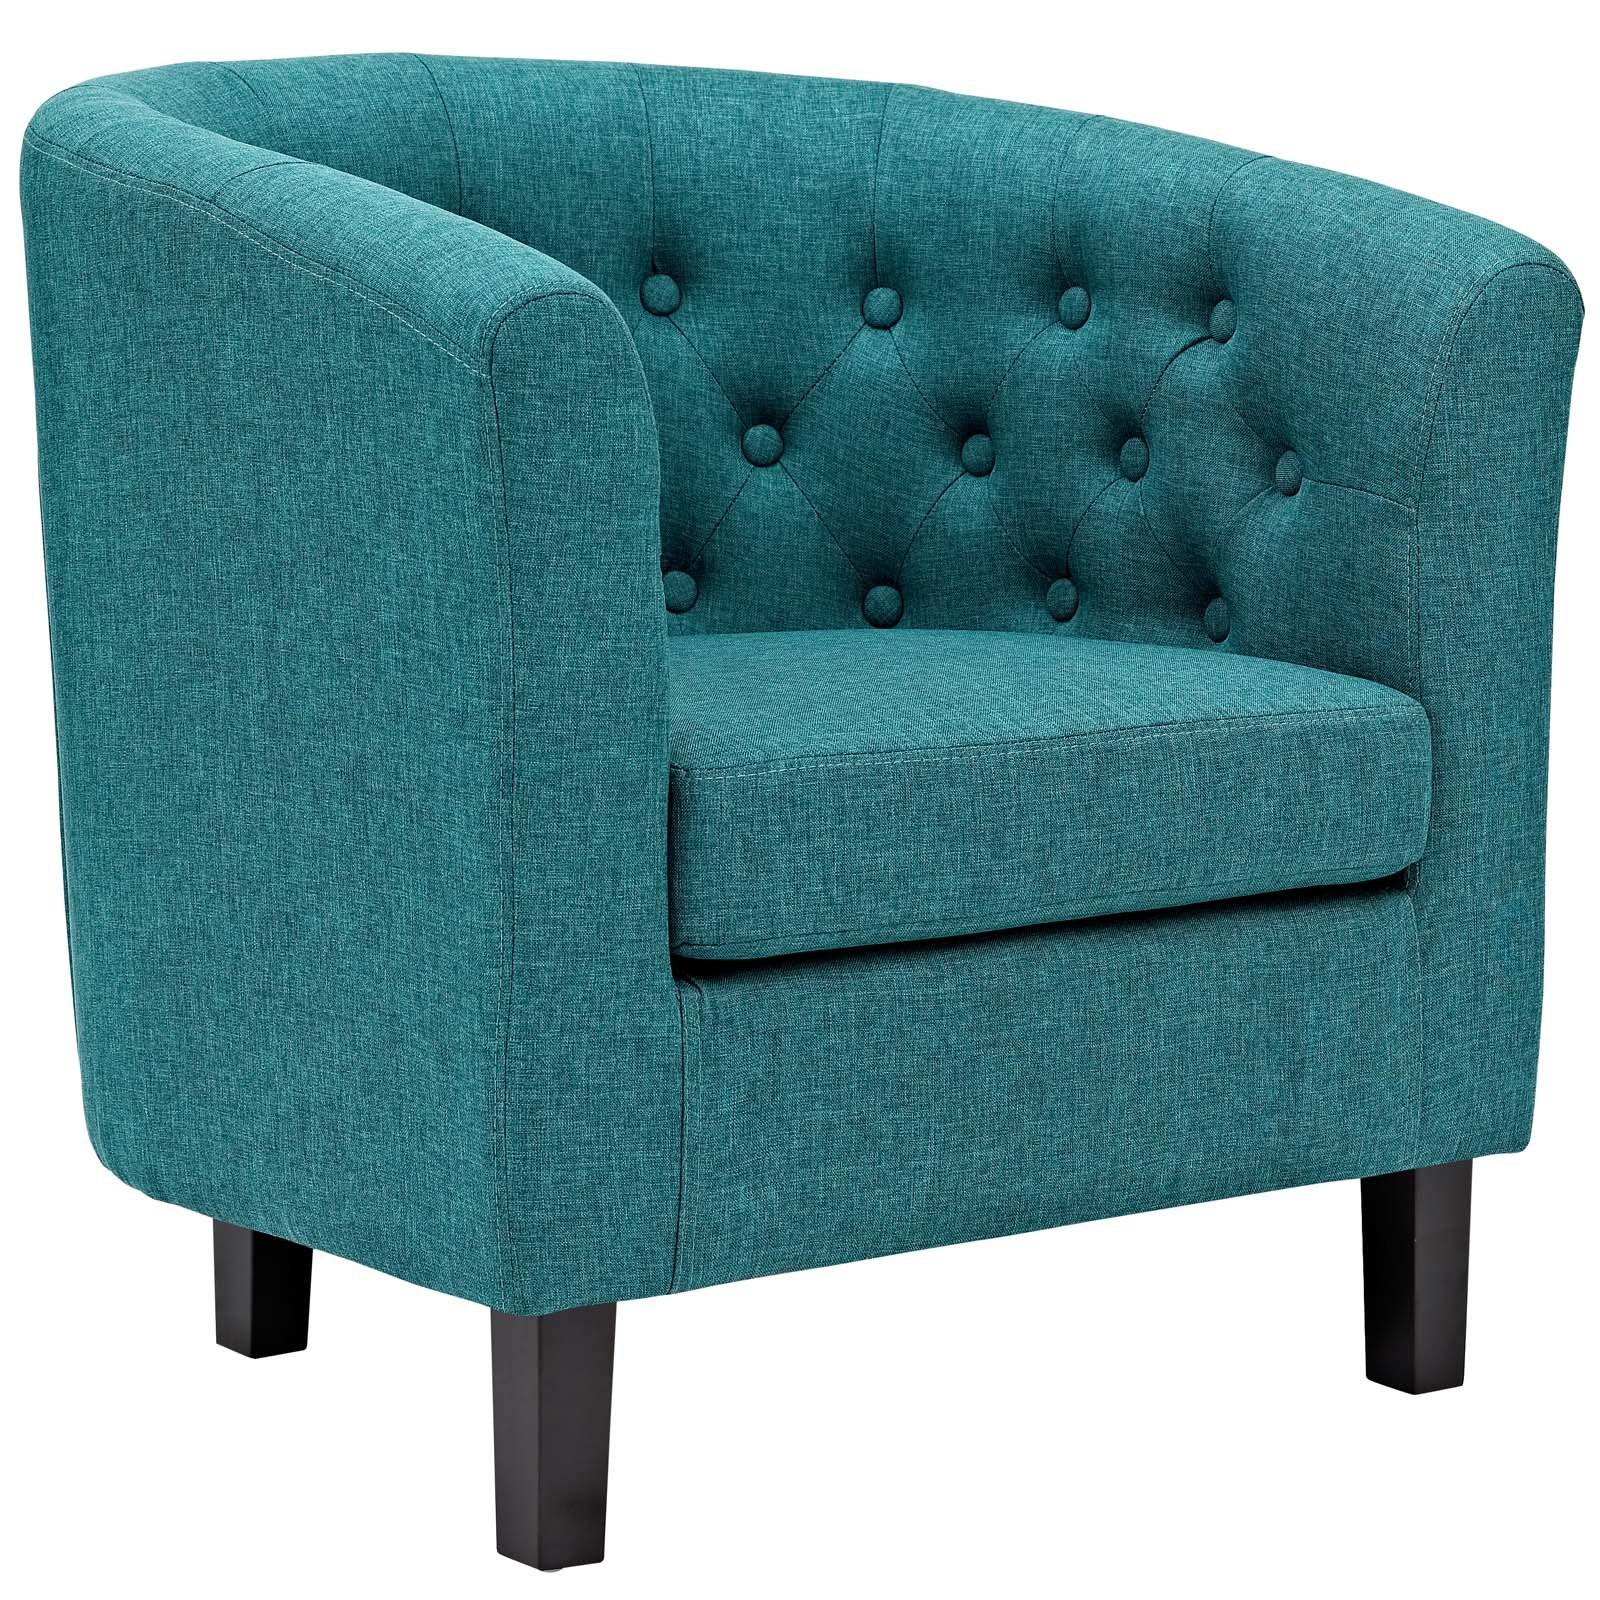 Modway eei 2551 tea prospect upholstered fabric contemporary modern accent arm chair teal